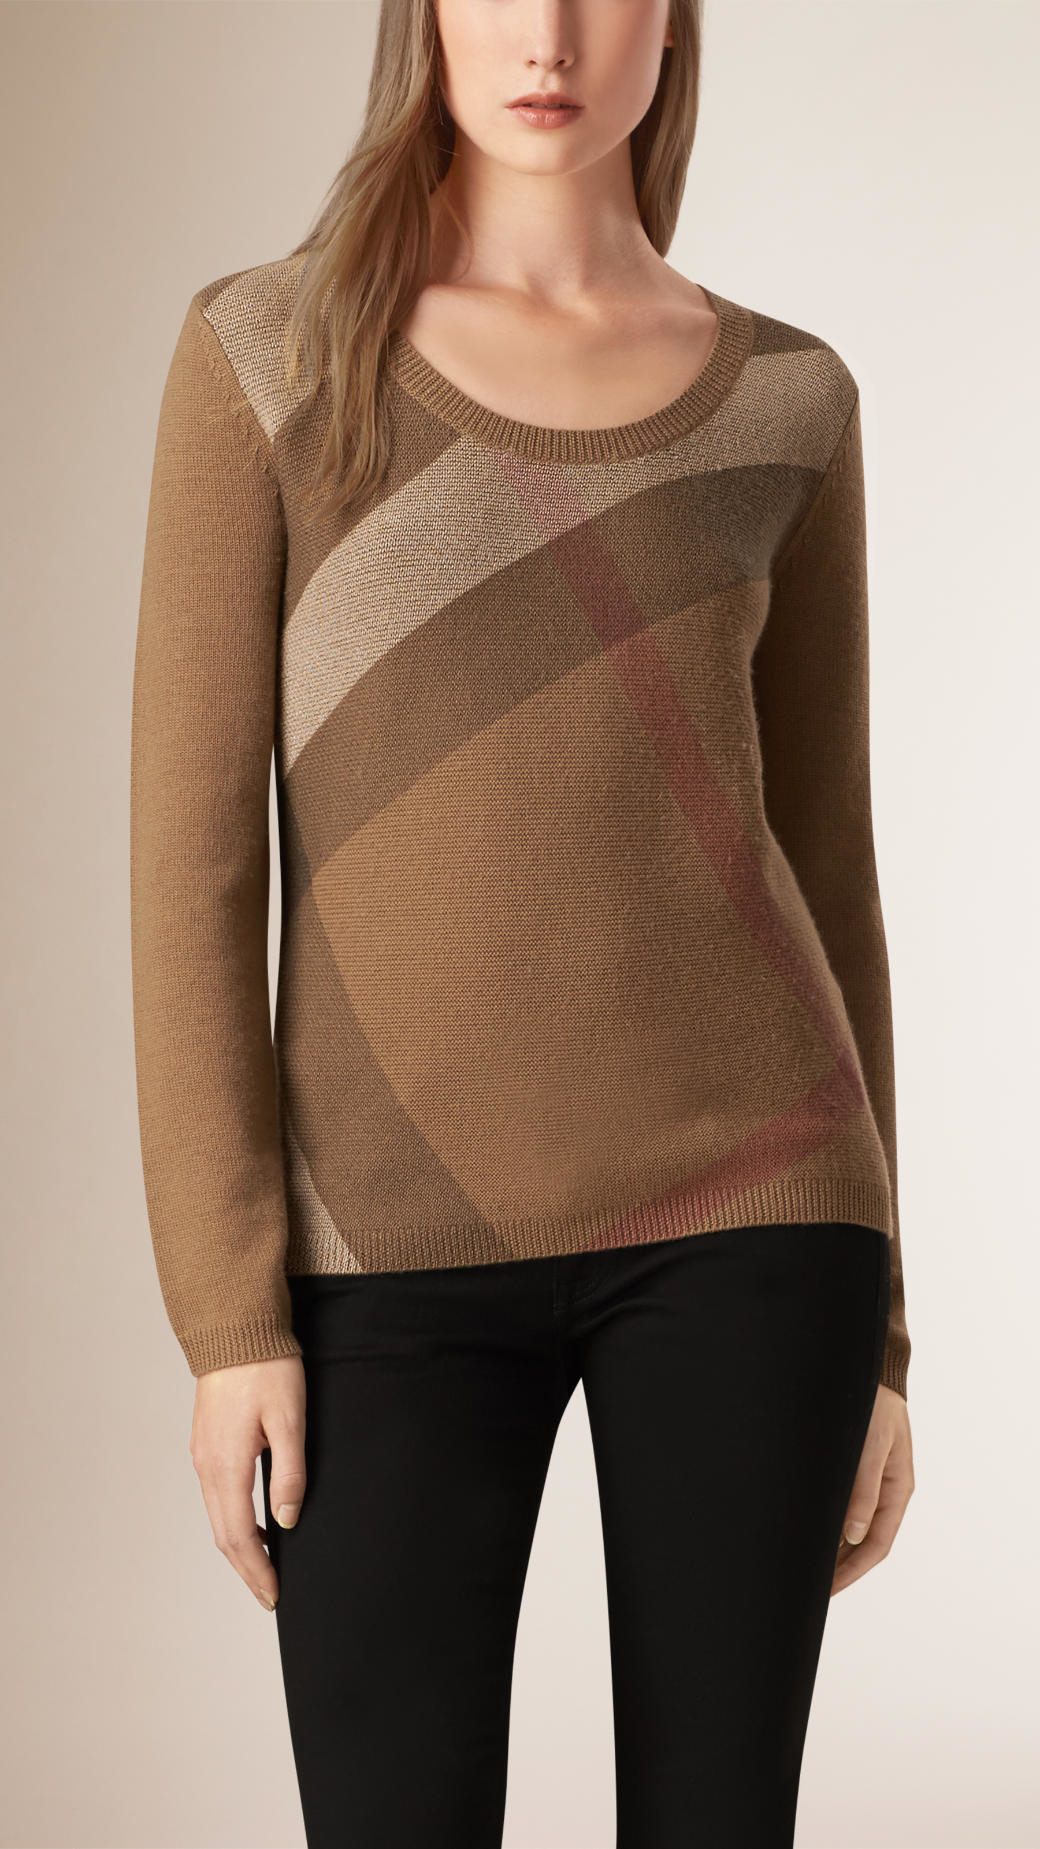 Burberry Check Detail Wool Cashmere Sweater Dark Camel in Brown | Lyst